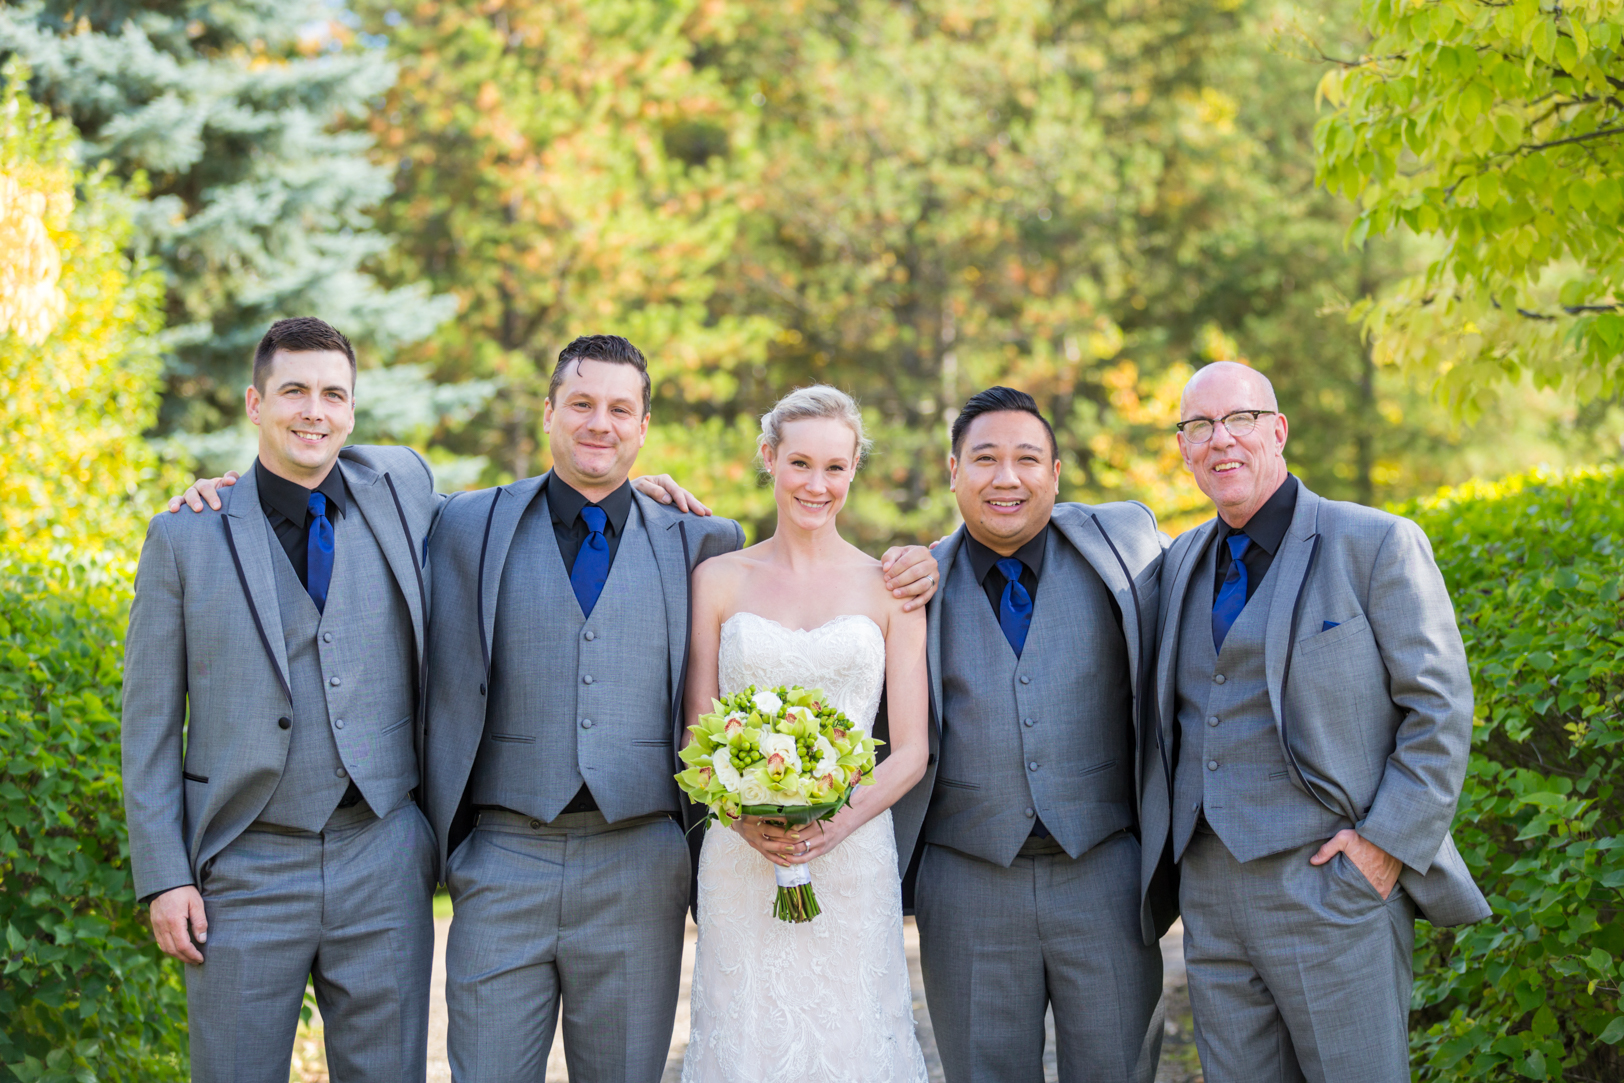 Devonian Botanic Gardens Wedding - Groomsmen